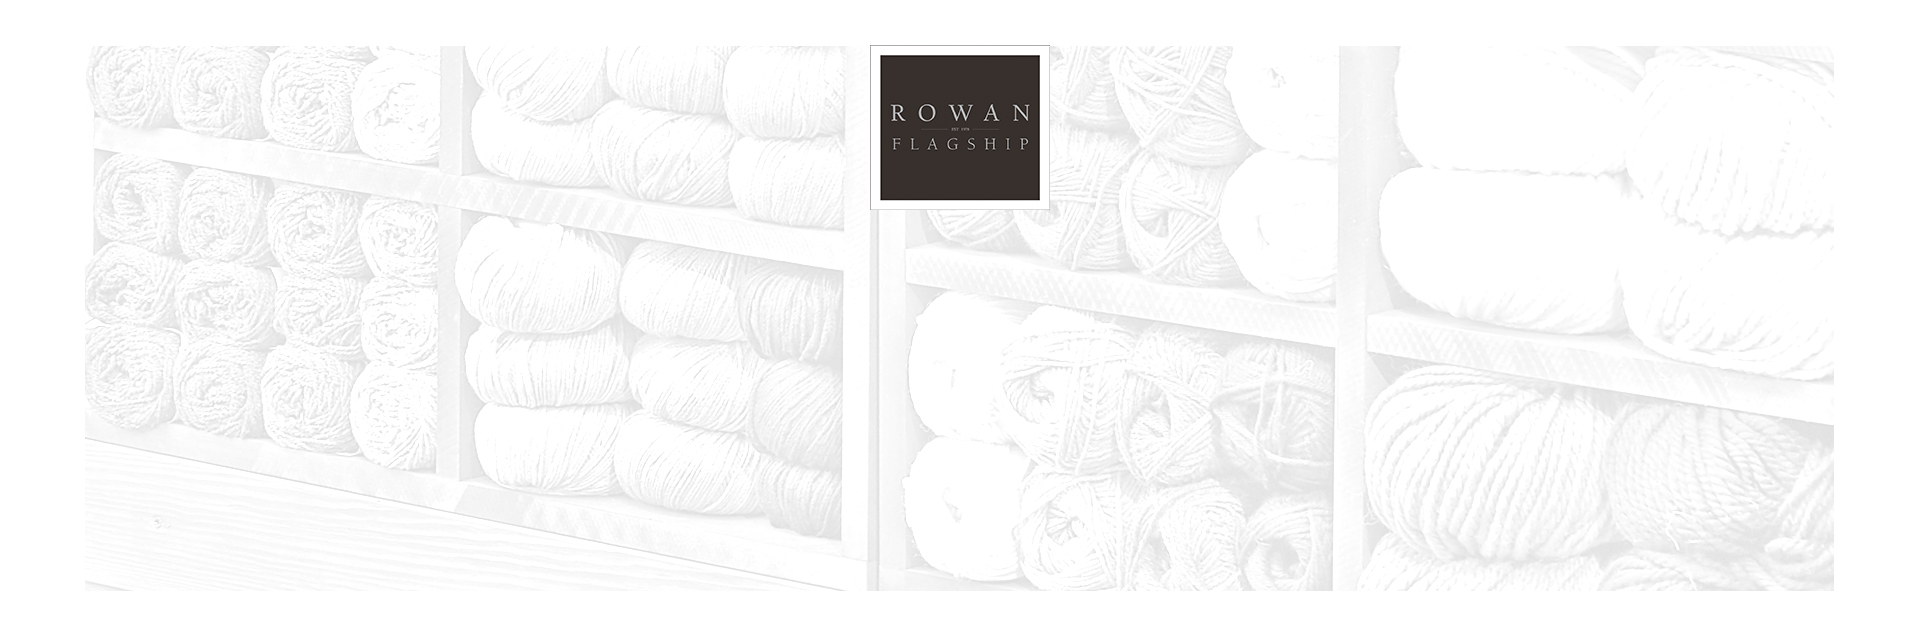 Established for many years, we are a family owned business specialising in craft fabrics and knitting yarn. We welcome all visitors to our Warehouse in Henley on Thames or to our store in Marlow.